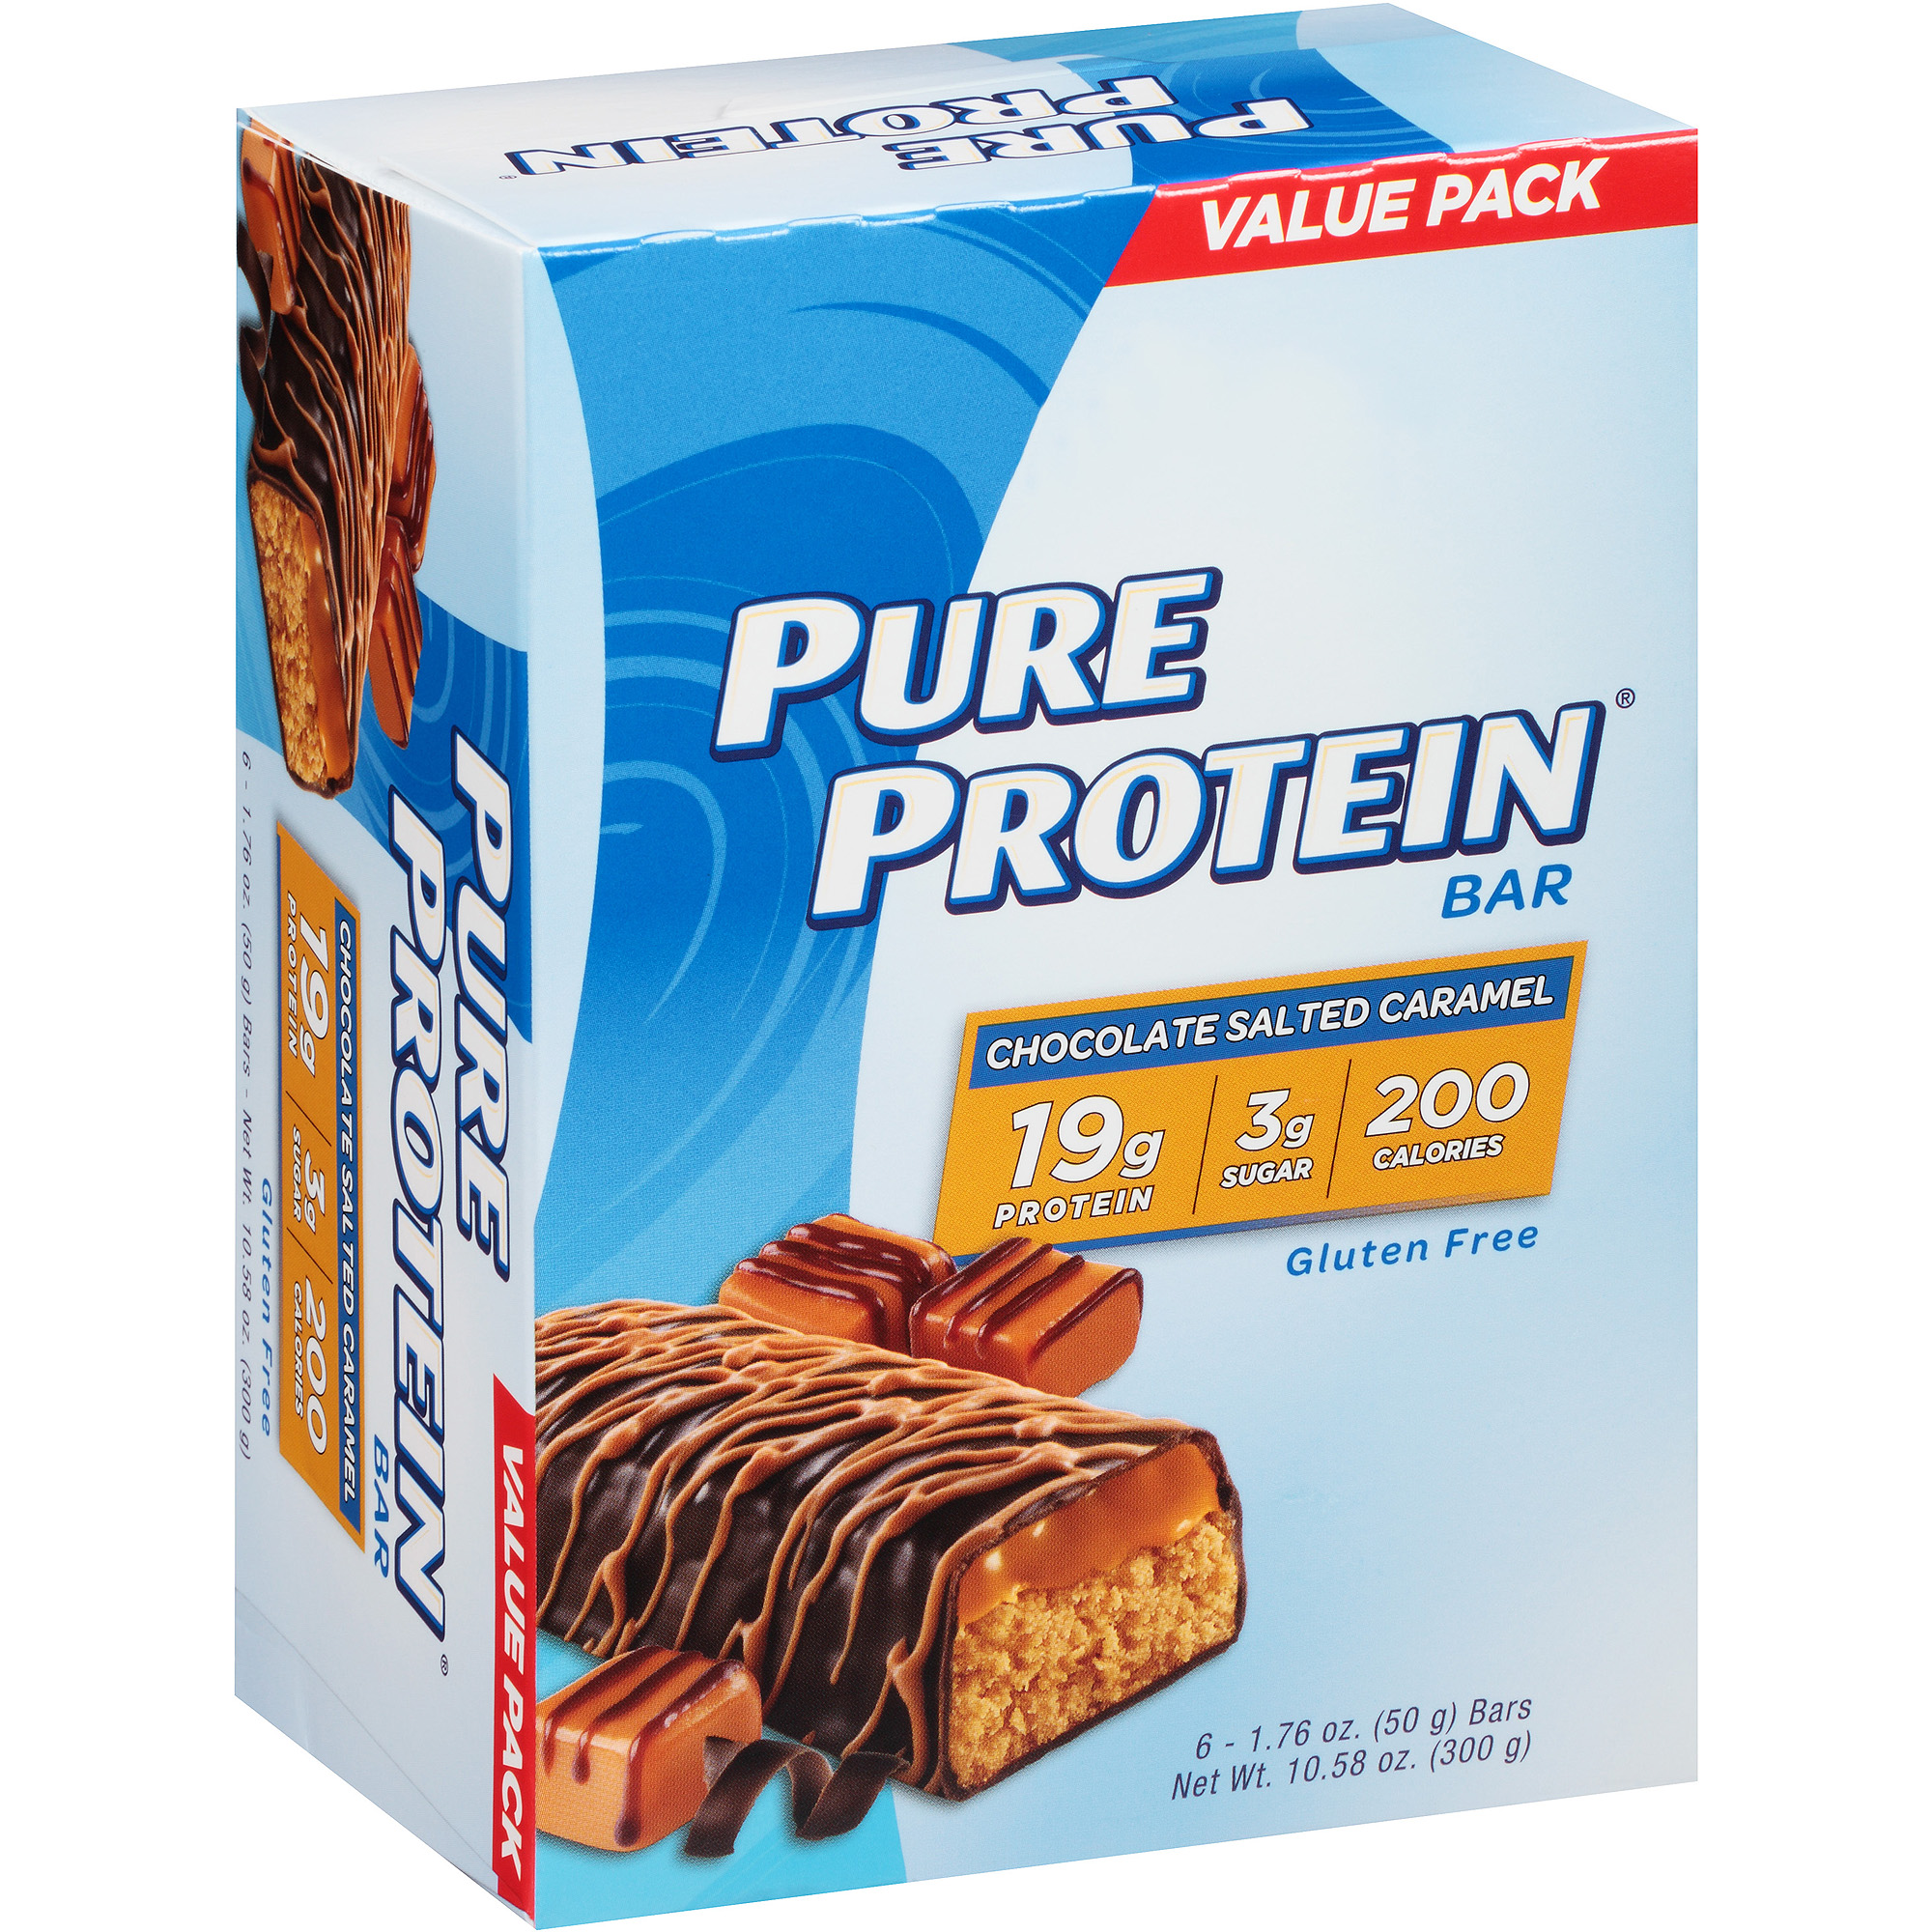 Pure Protein Chocolate Salted Caramel Bars, 1.76 oz, 6 count